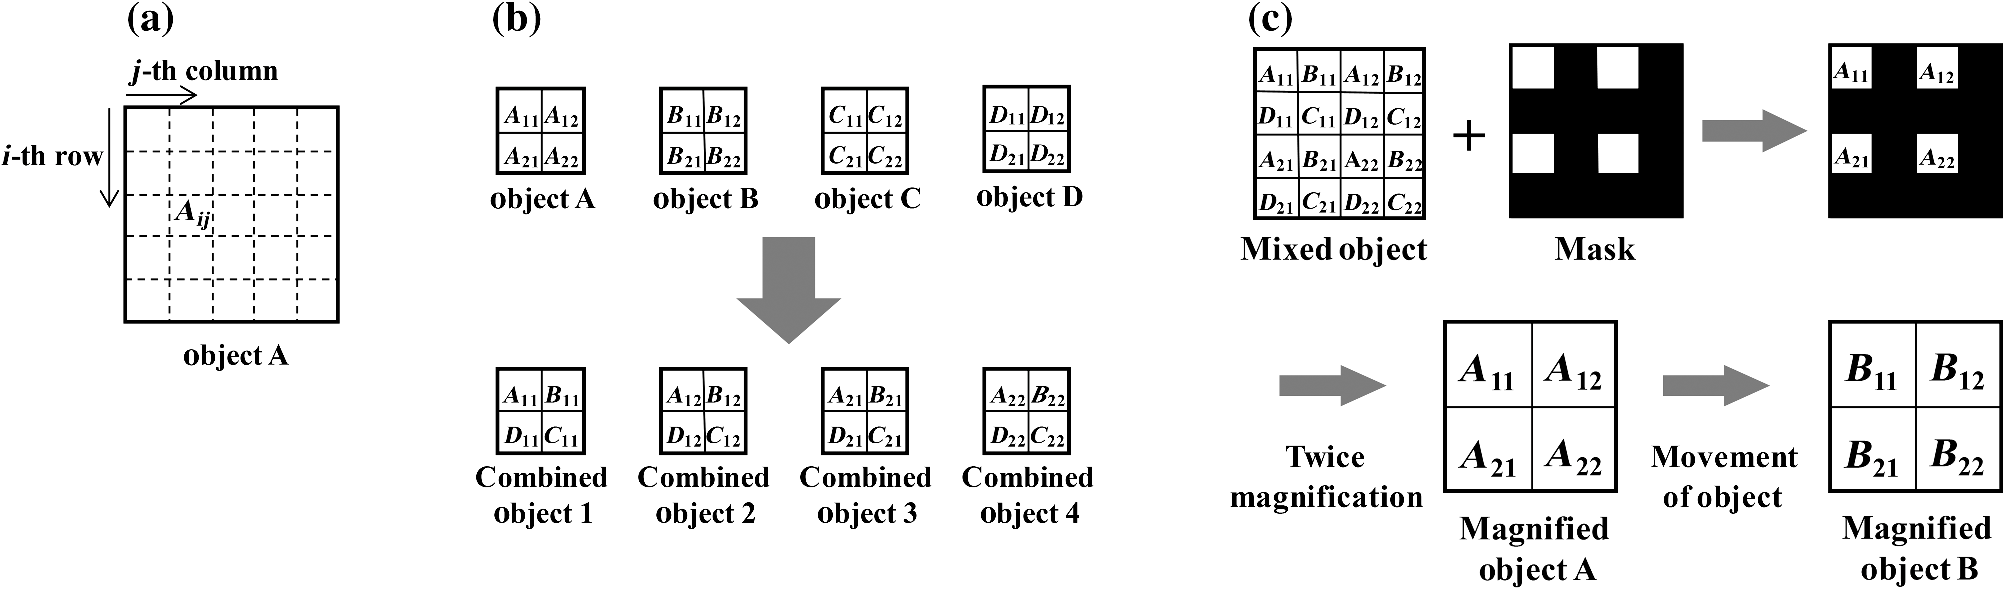 Multi Image Display System Based On Magnifier By Lens Array As Samsung Tv Parts Diagram Together With 7 Segment A Segmentation Of Target Object B Combination Segments From Objects C And D Final Generation The Proposed